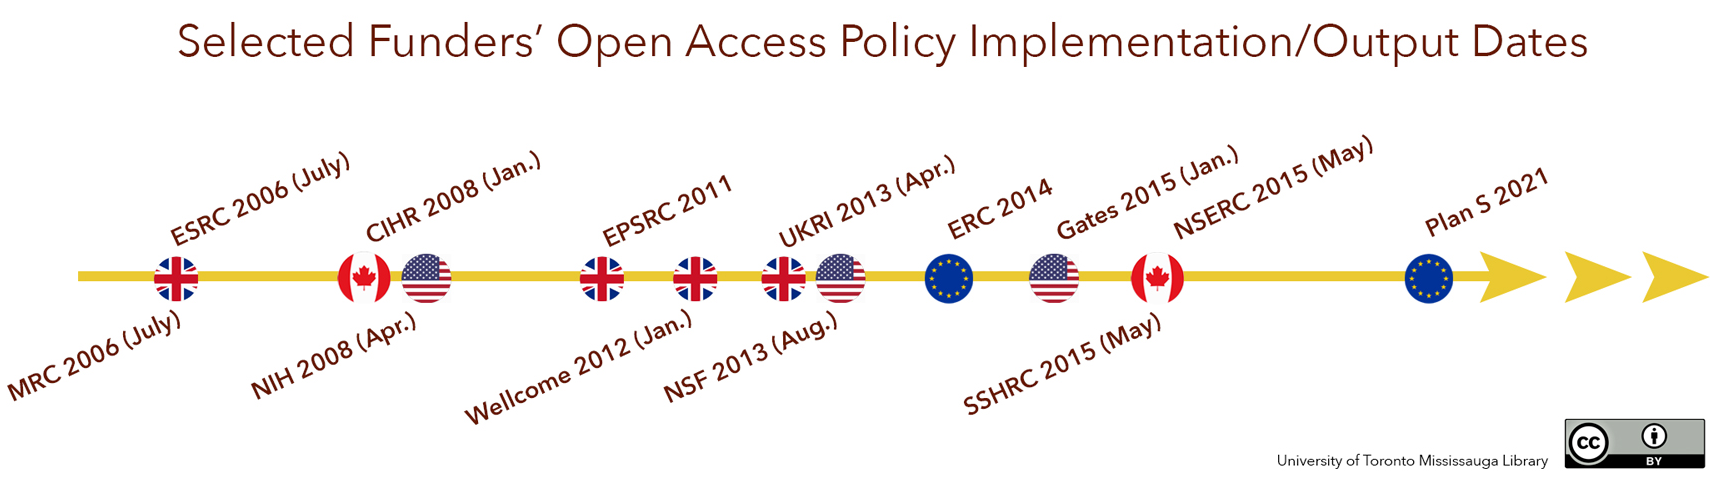 selected funder's open accesspolicy implementation